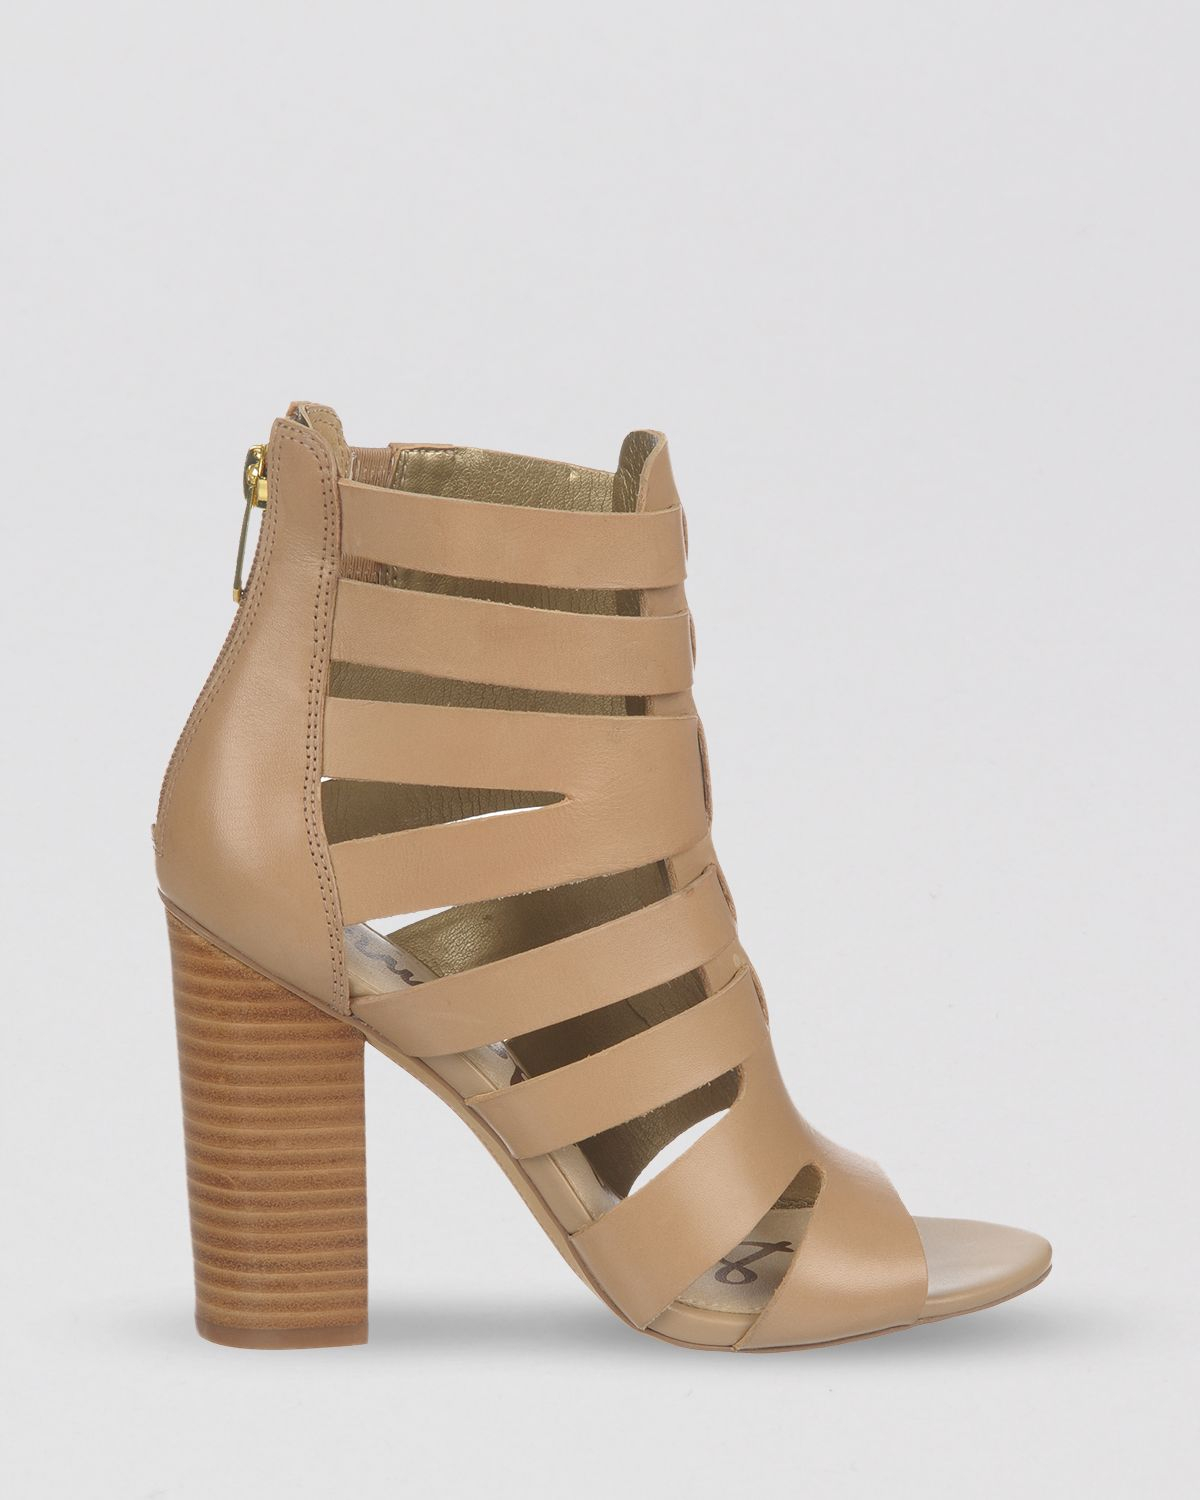 Sam Edelman Stiletto sandals